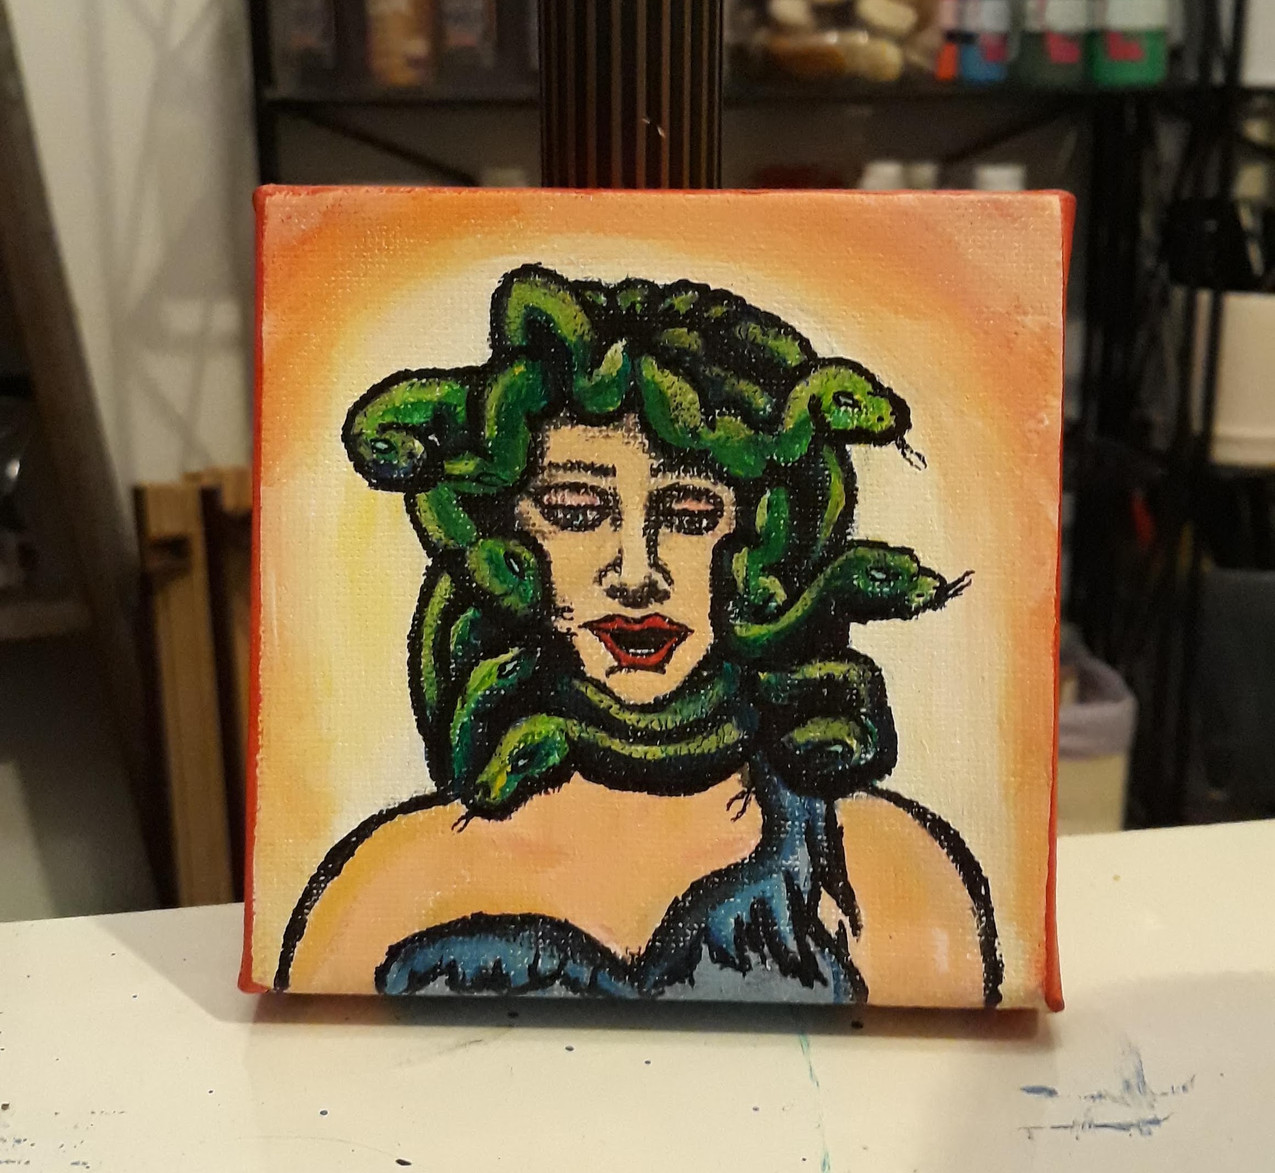 35 minute acrylic of Medusa. No reference used.